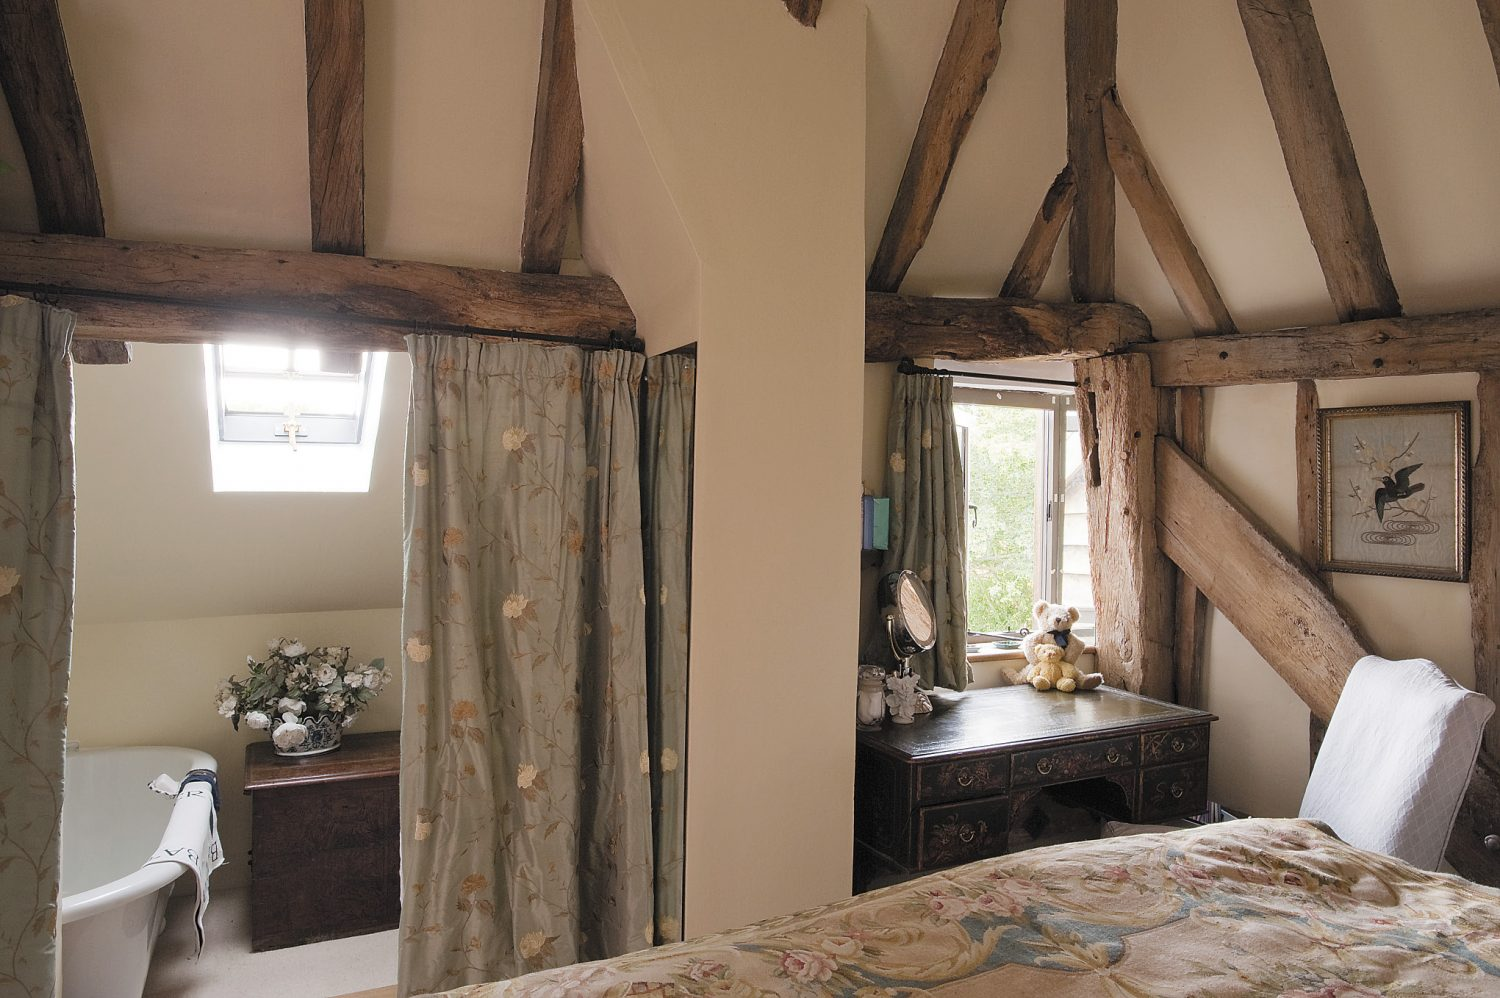 Inside the glass door are the master bedroom and bathroom, the latter virtually built around a magnificent 17th century oak chest